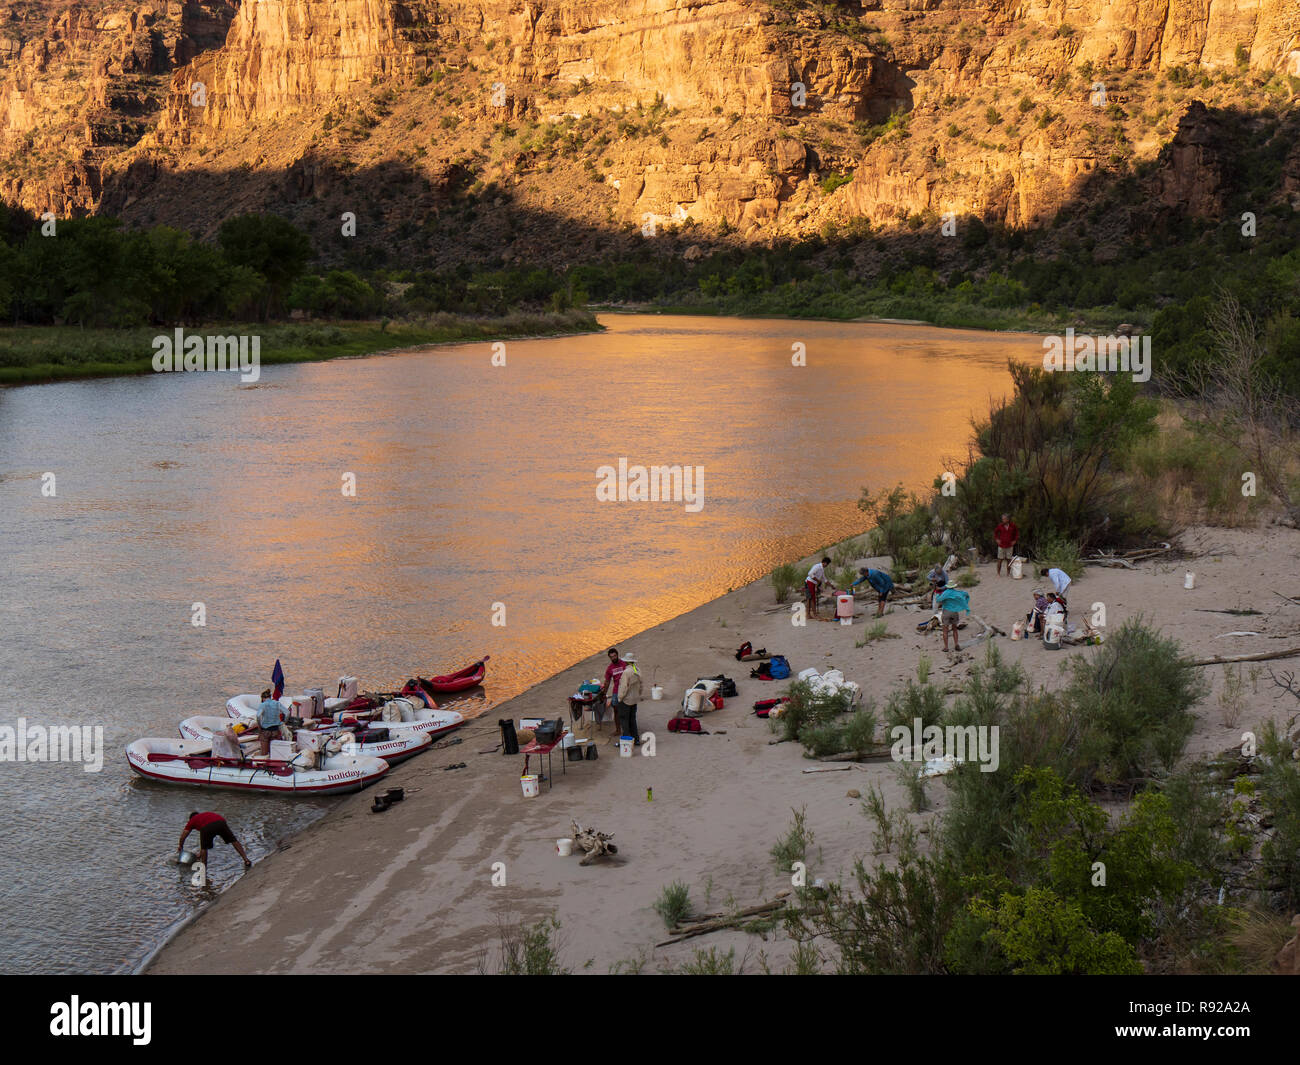 Lion Hollow campsite, Desolation Canyon north of Green River, Utah. - Stock Image